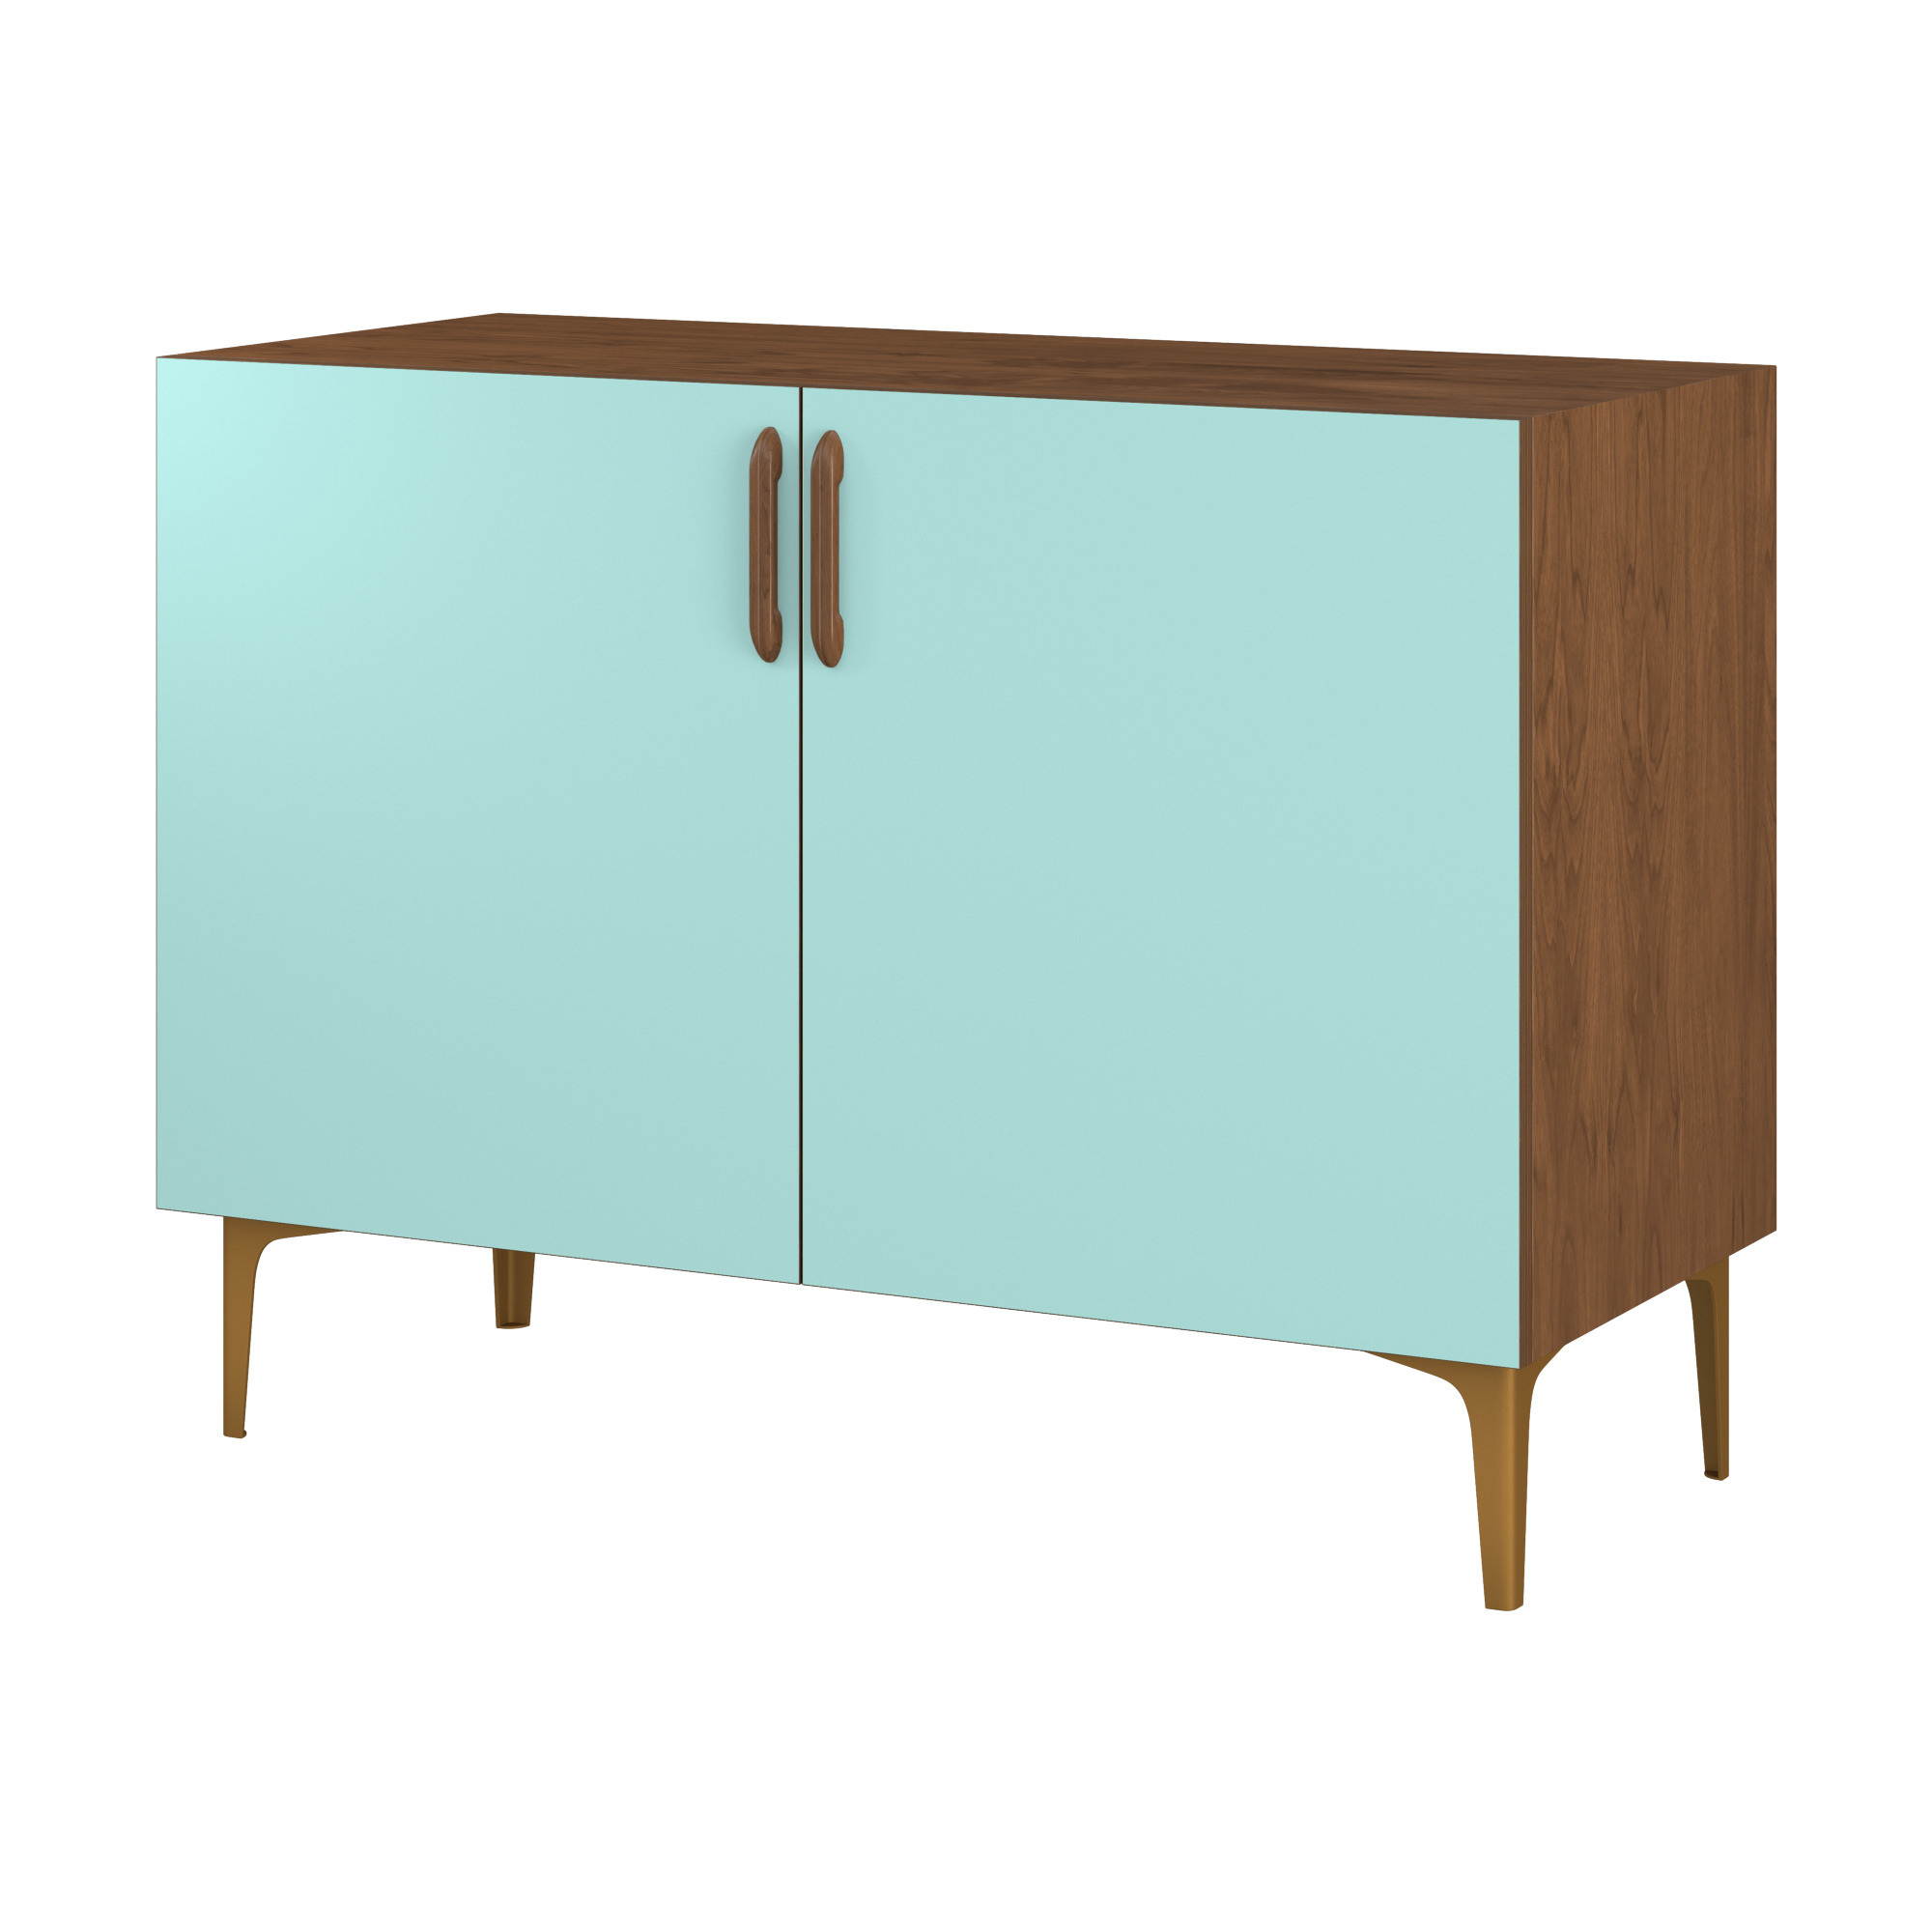 Customize Credenzas | Snugsquare Within Bright Angles Credenzas (View 2 of 20)